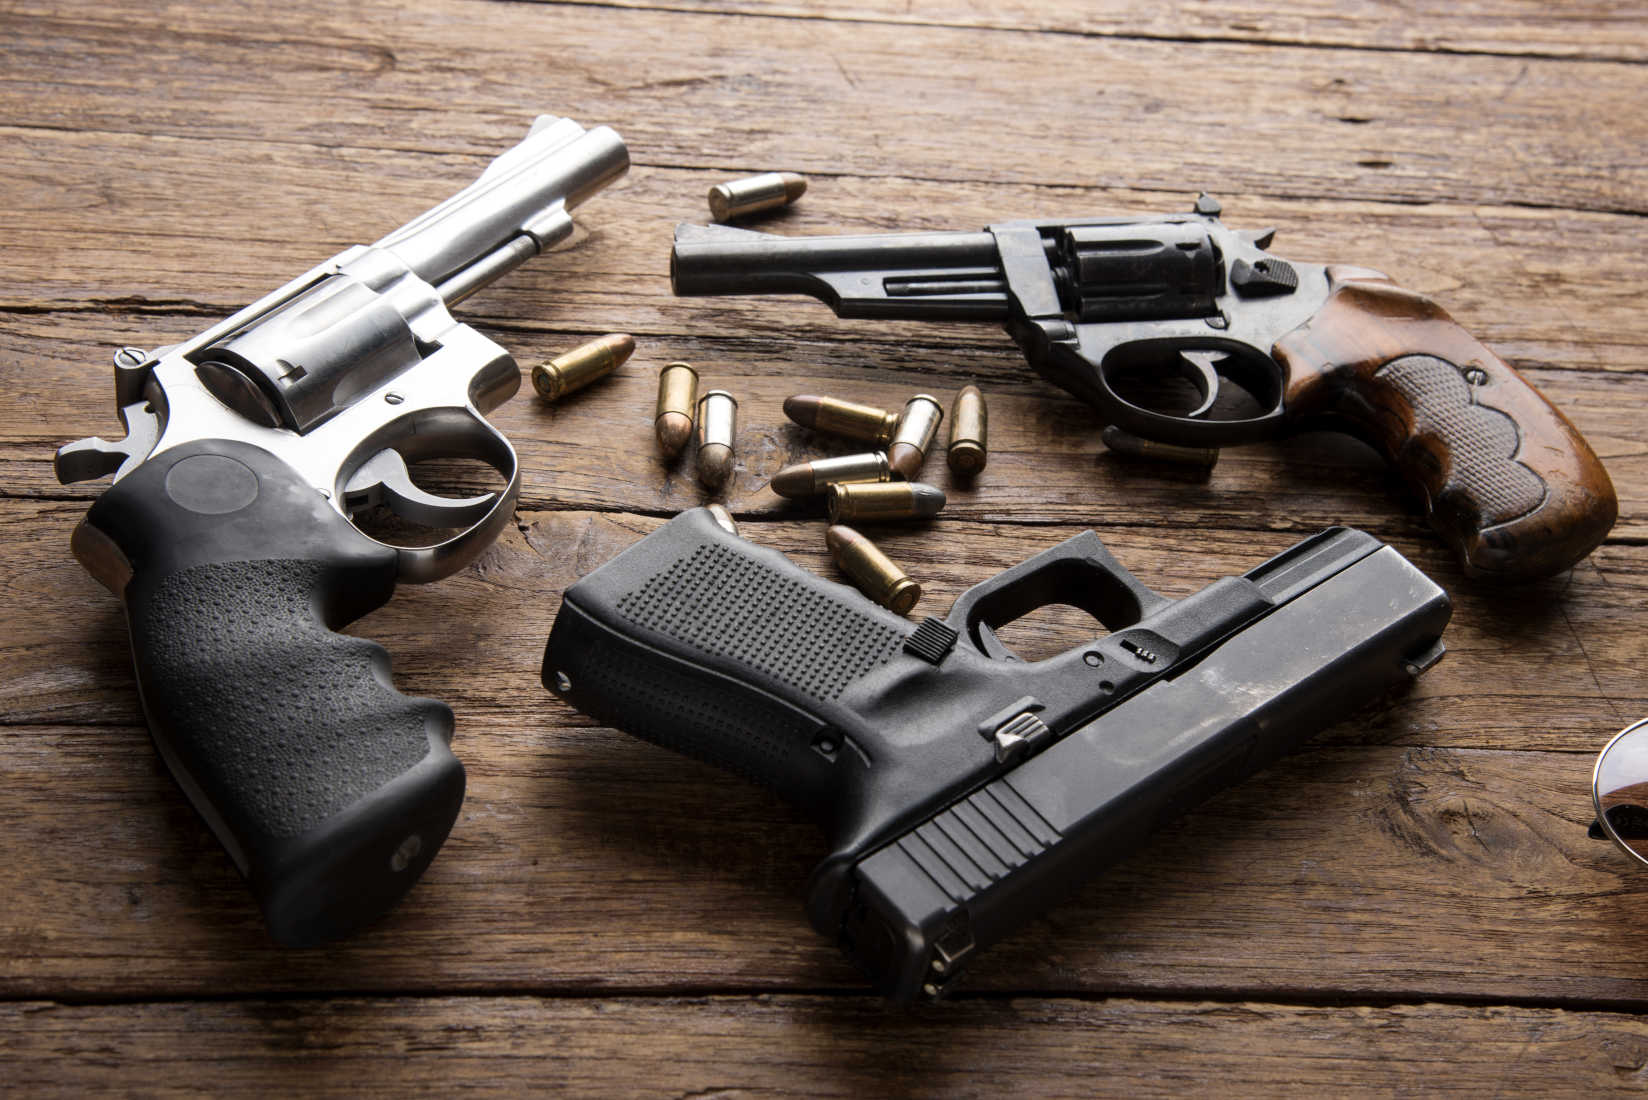 Florida Cops Are Seizing Guns; Cops, Judges – Not Doctors – Make Mental Health Call